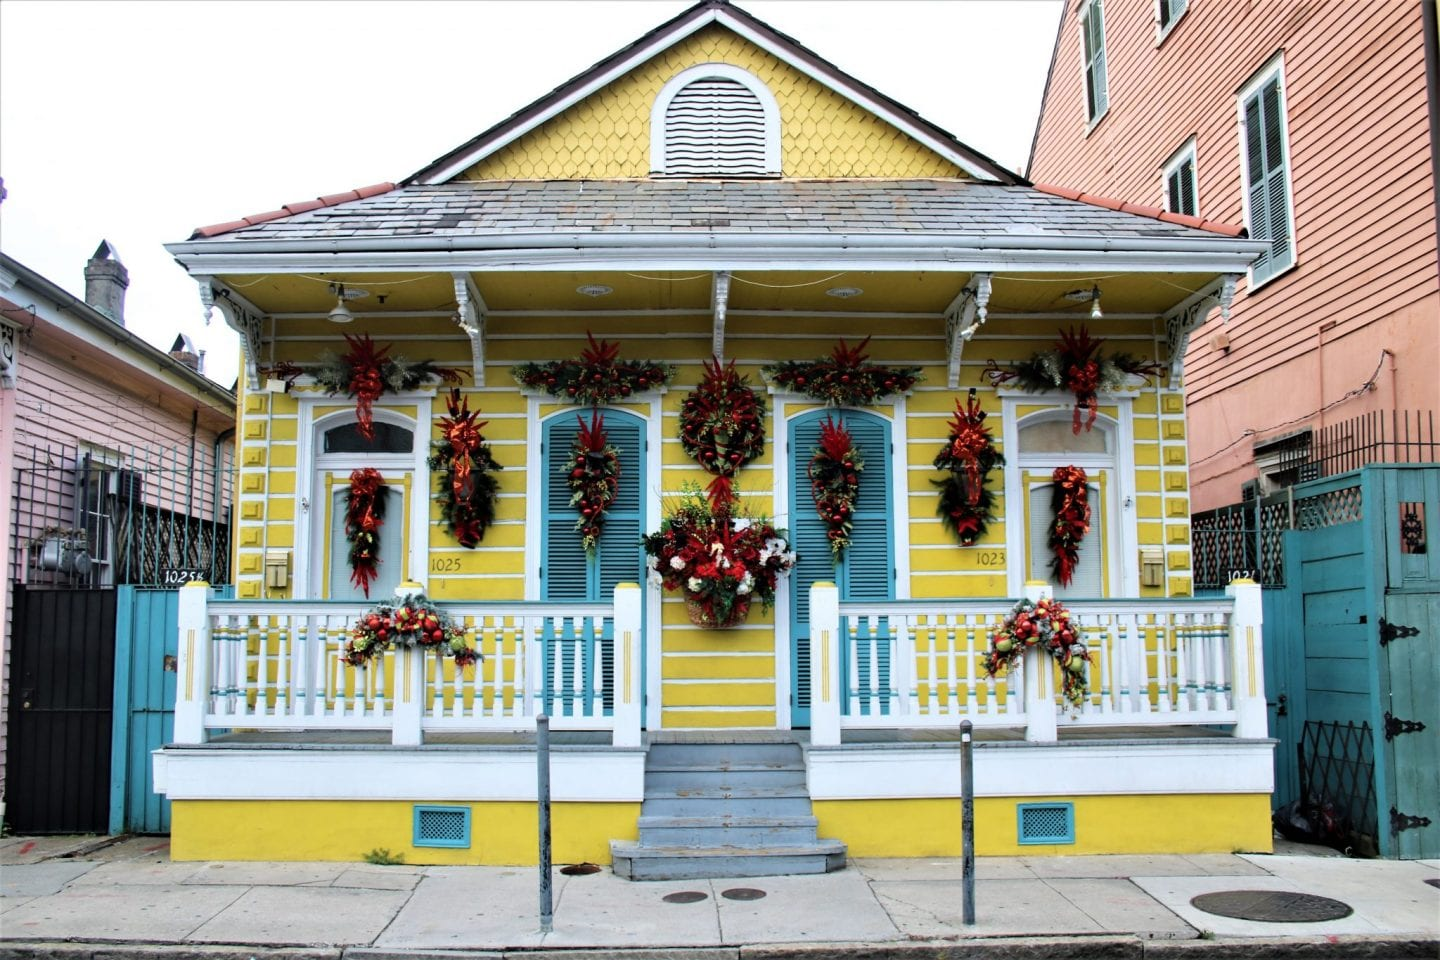 29 Photos To Inspire You To Visit New Orleans